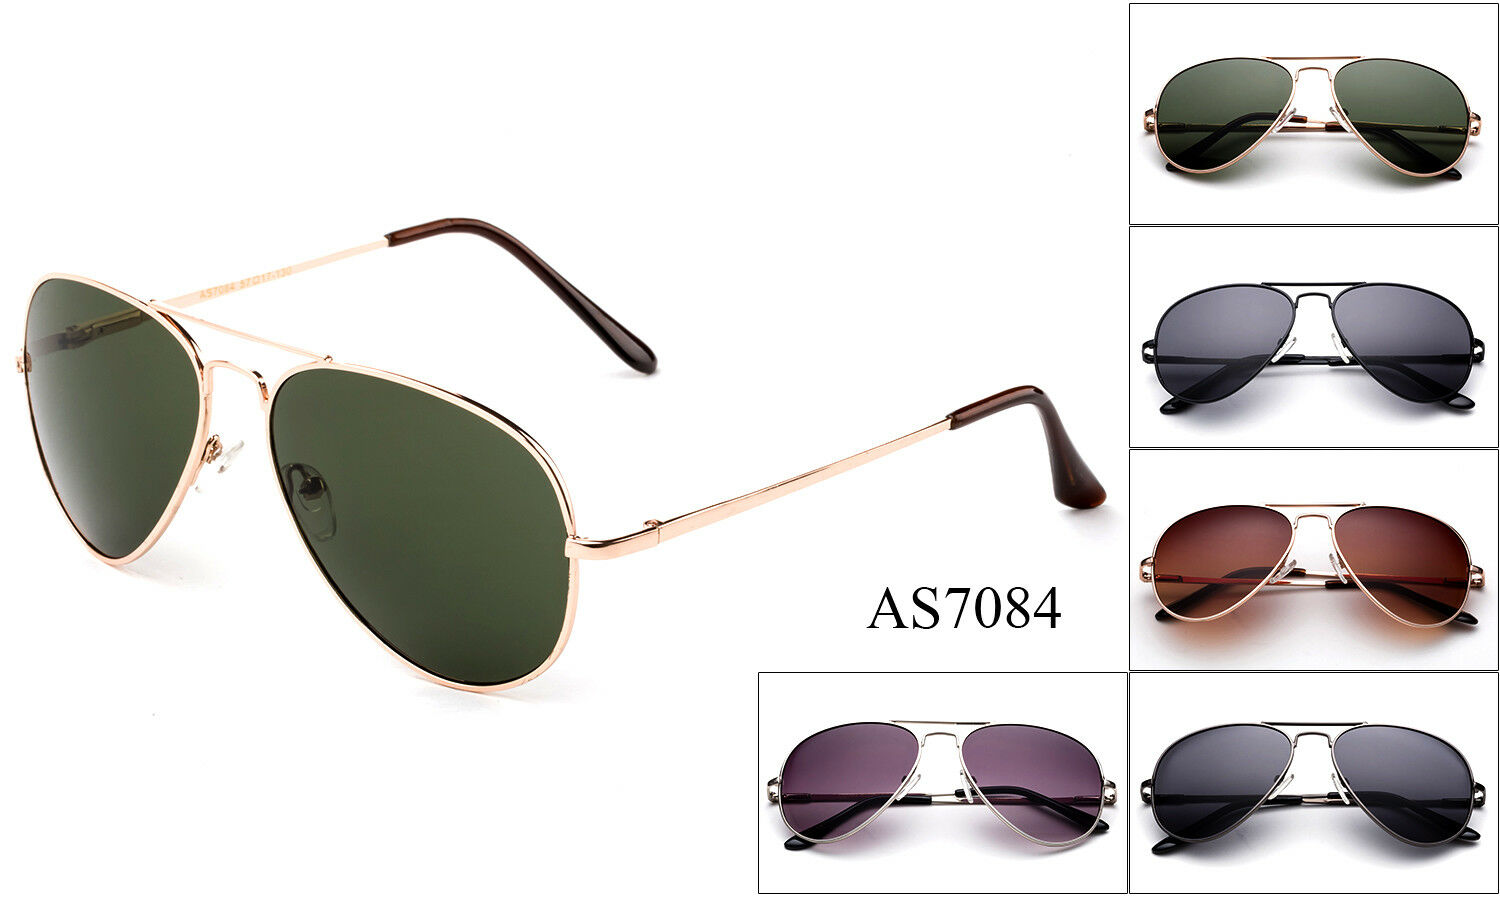 Aviator Sunglasses Top Gun Classic Metal Spring Frame Men Wo